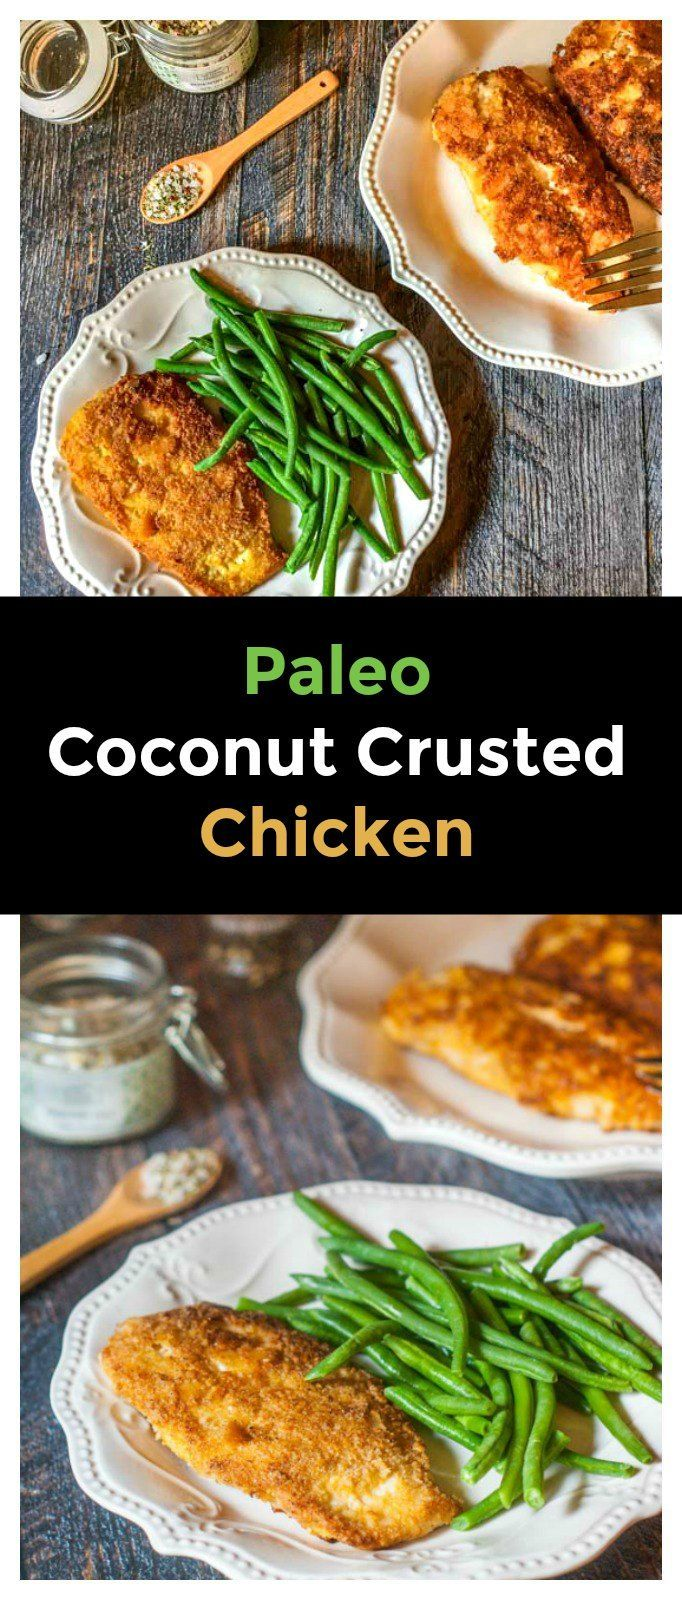 A quick and easy low carb dinner - Paleo Coconut Crusted Chicken